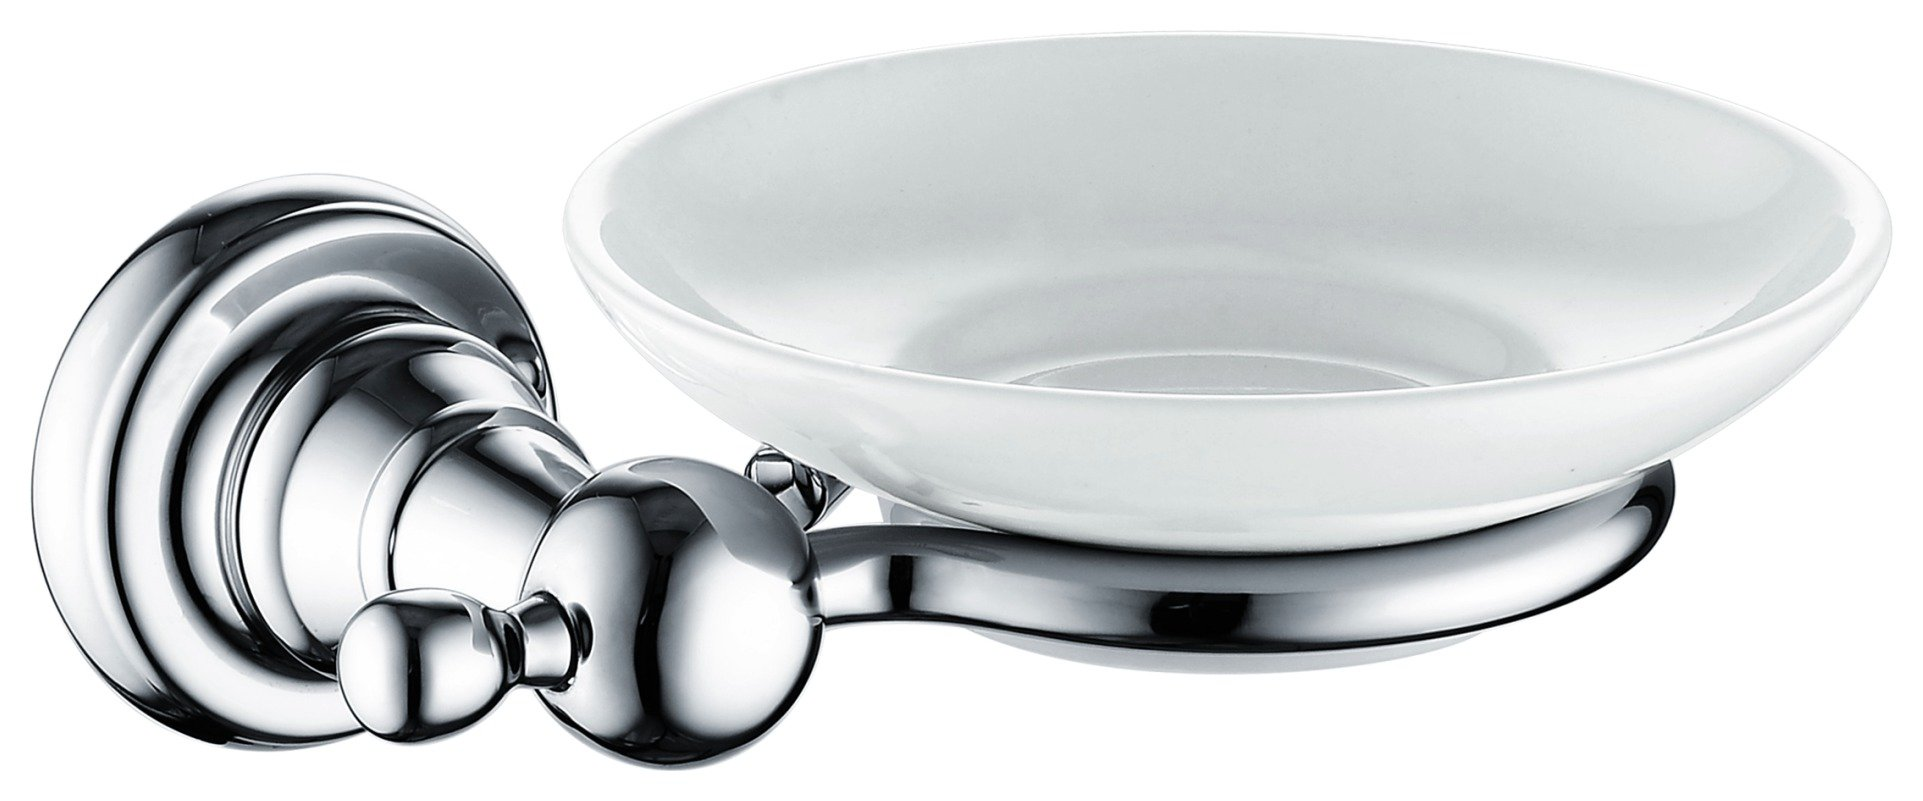 Image of Bristan 1901 Soap Dish - Silver.